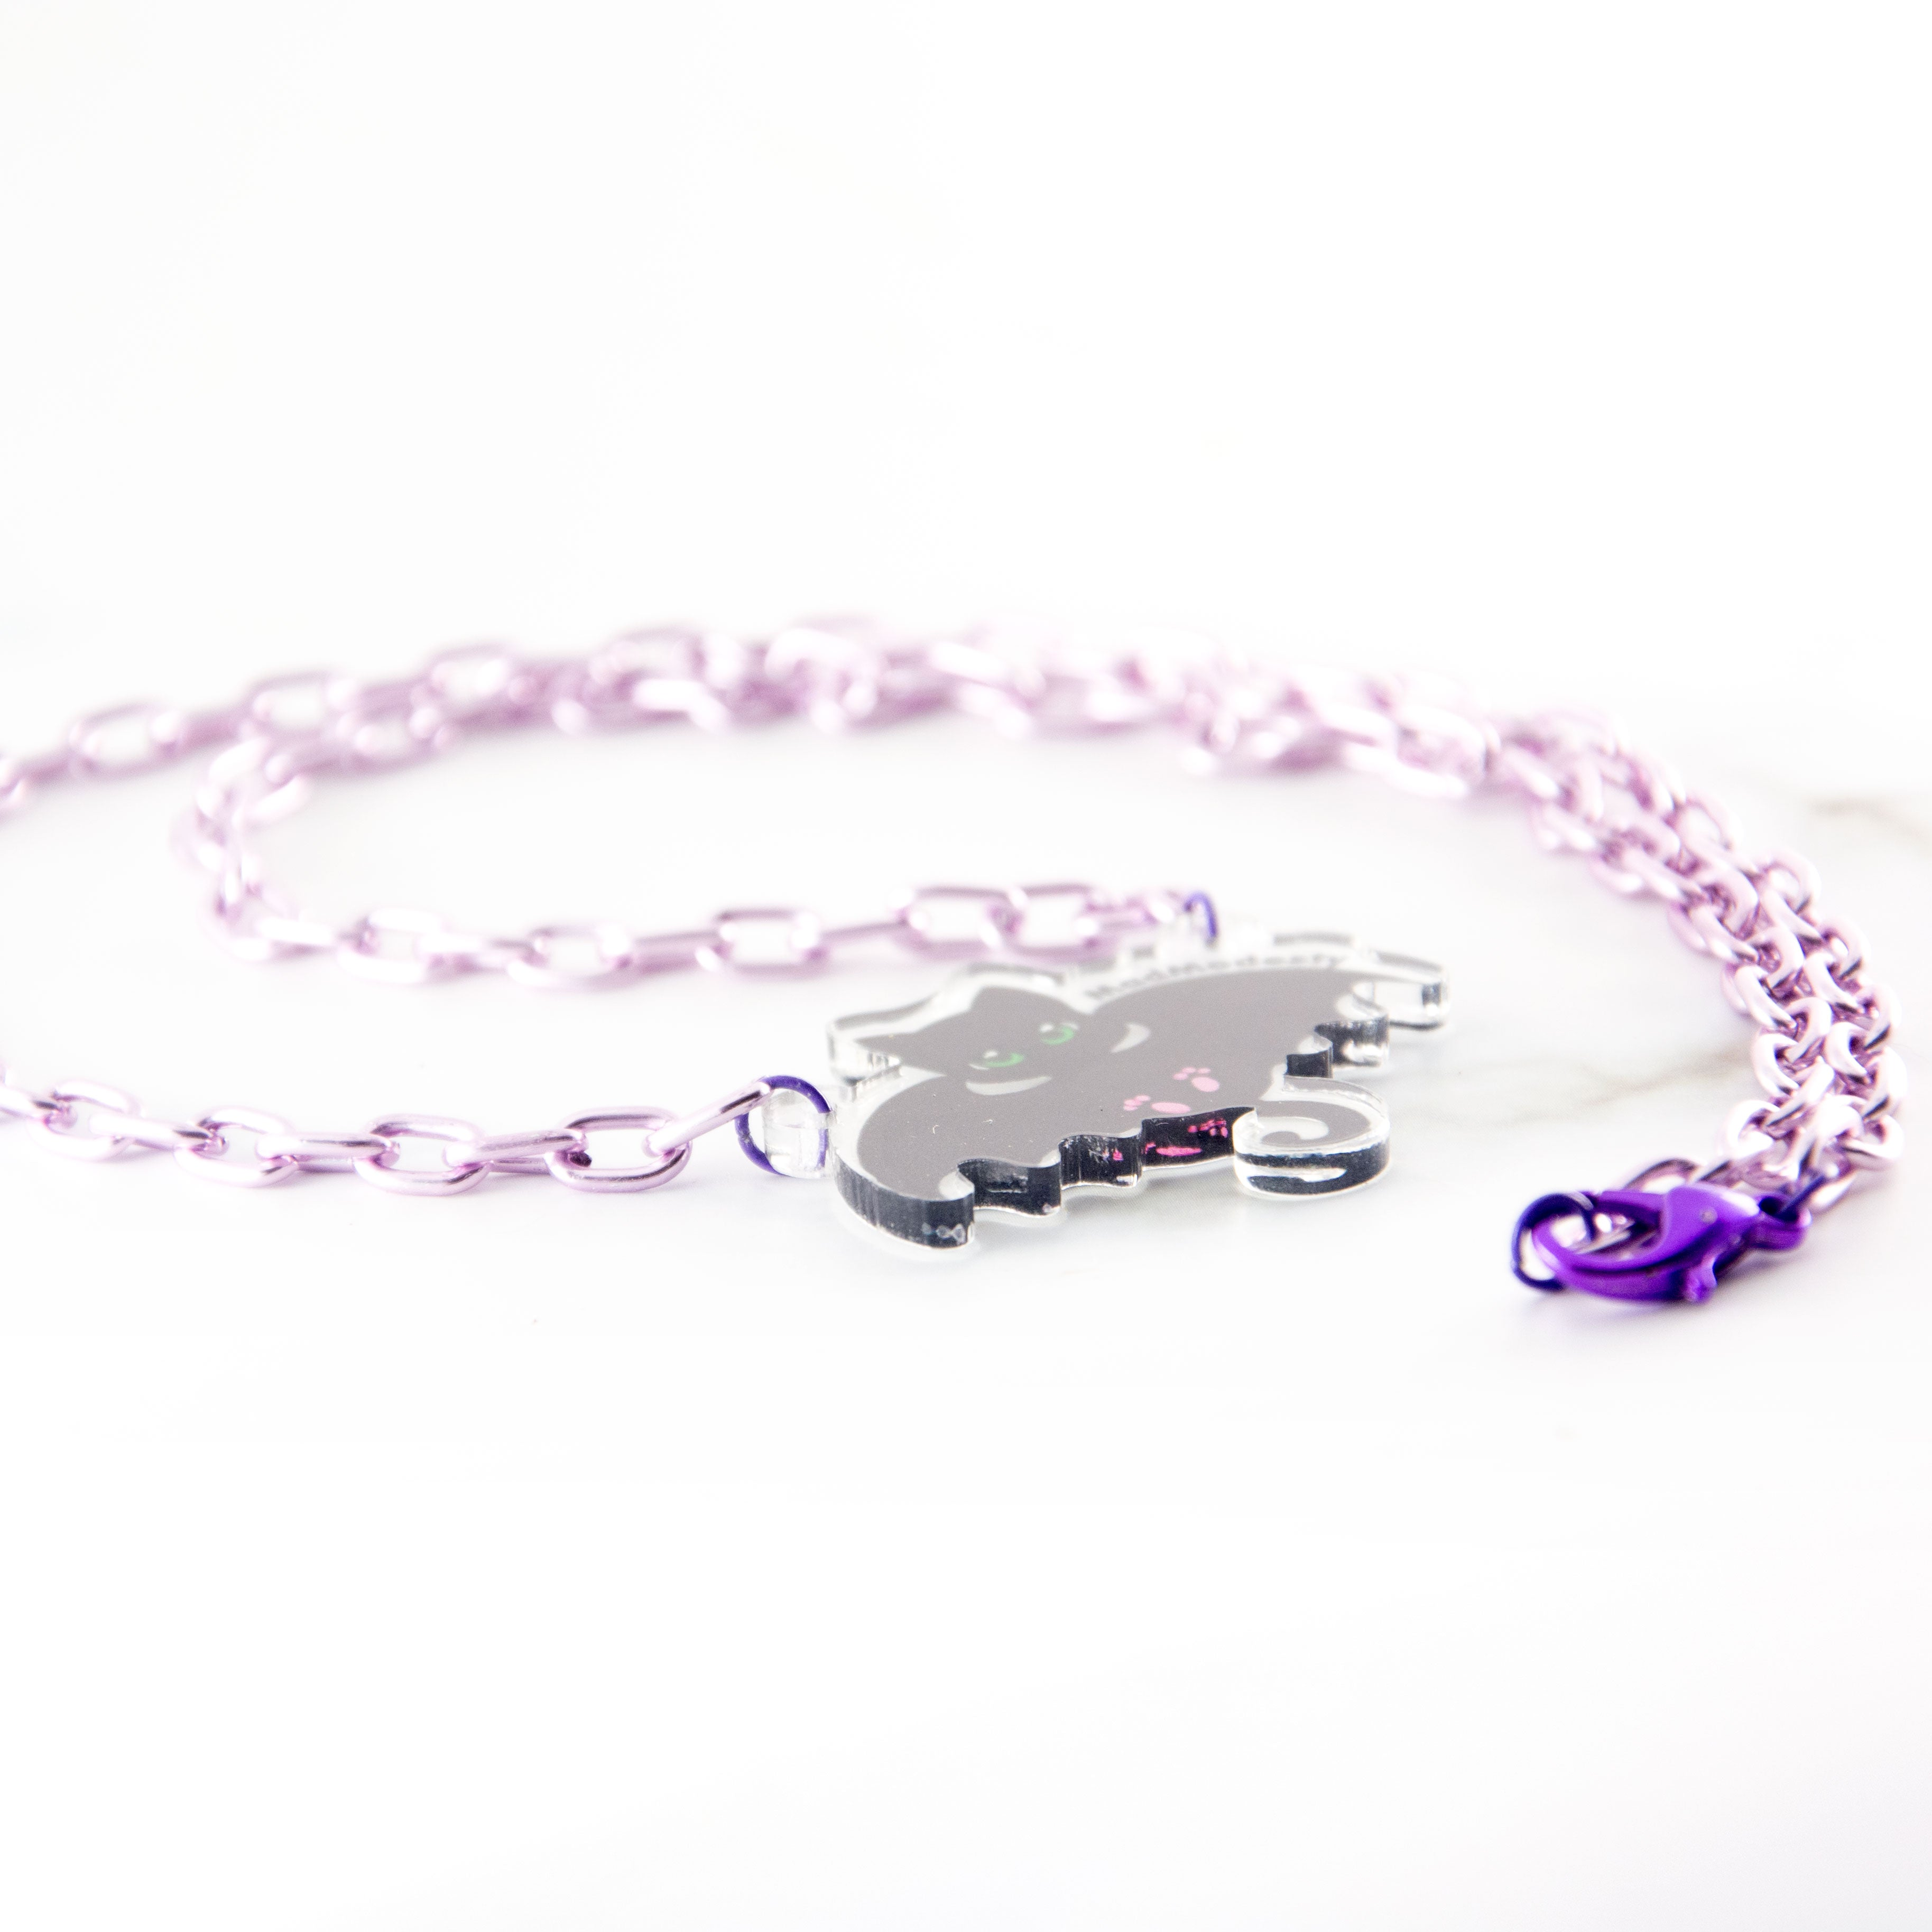 Sweet goth bat cat purple necklace - MadModesty